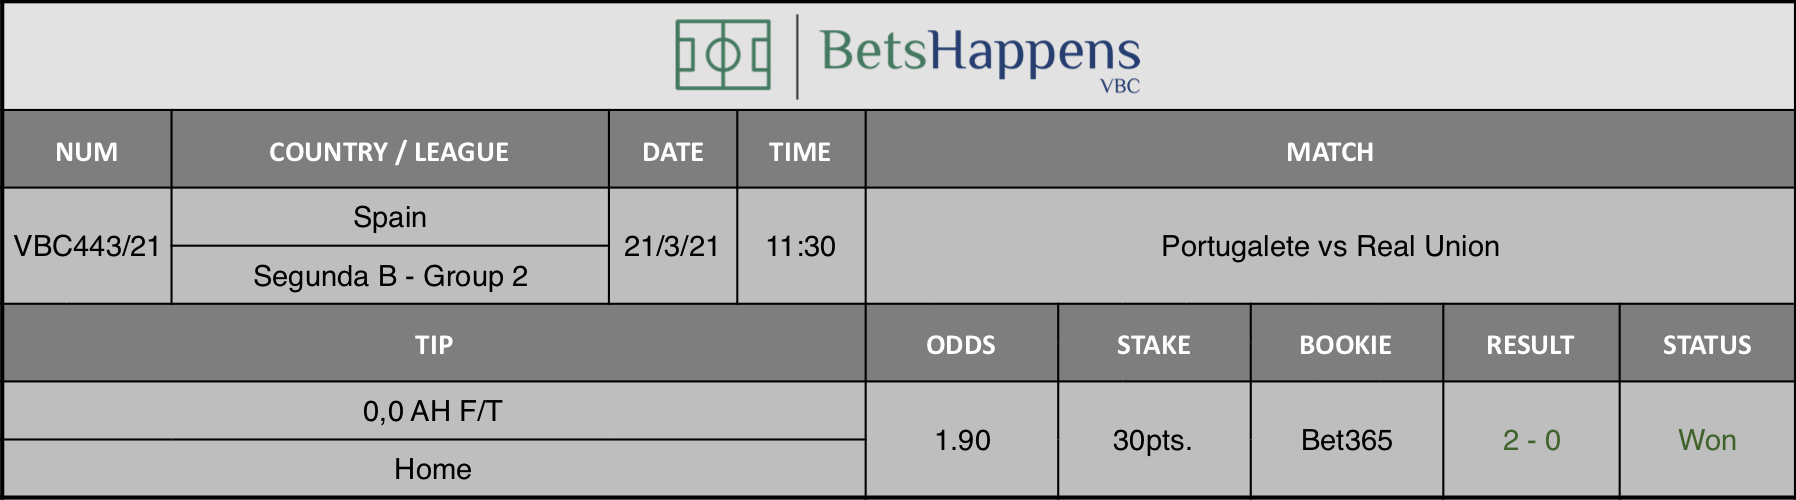 Results of our tip for the Portugalete vs Real Union match where 0,0 AH F/T  Home is recommended.